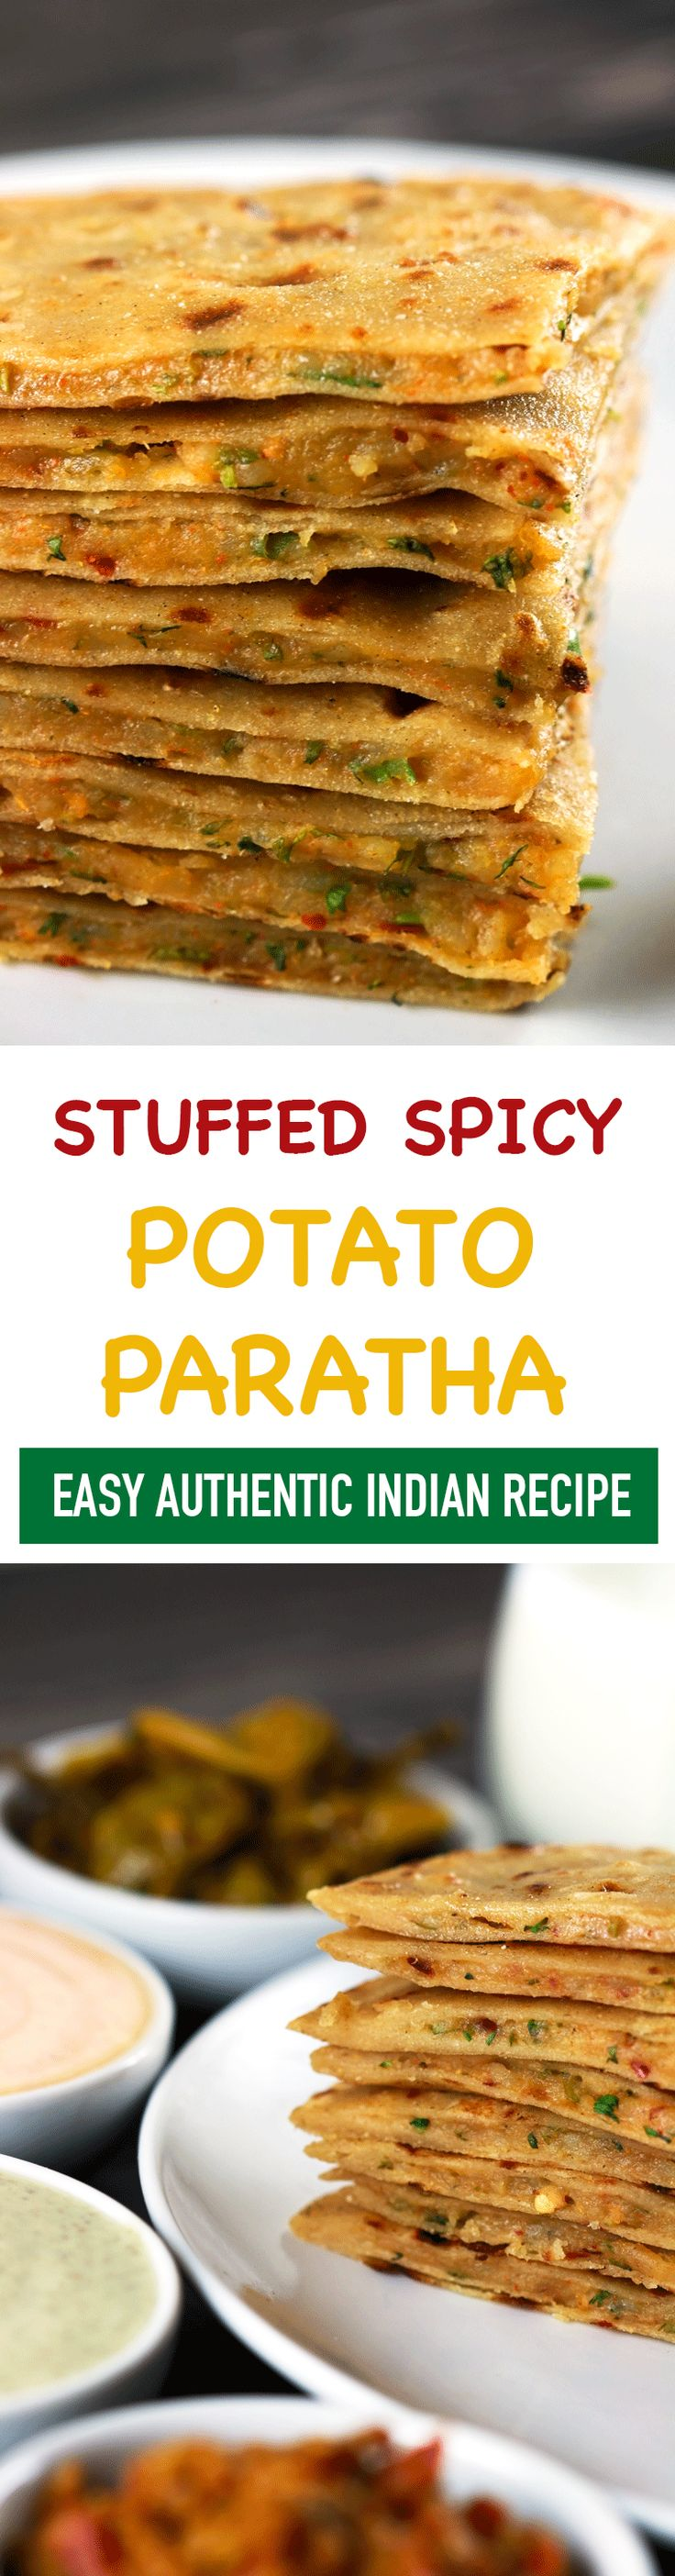 These Indian Stuffed Potato Parathas are perfect when you want to have delicious classic Indian food, but don't want to make anything too complicated! Each bite is bursting of delicious flavors that you won't be able to forget! | ScrambledChefs.com